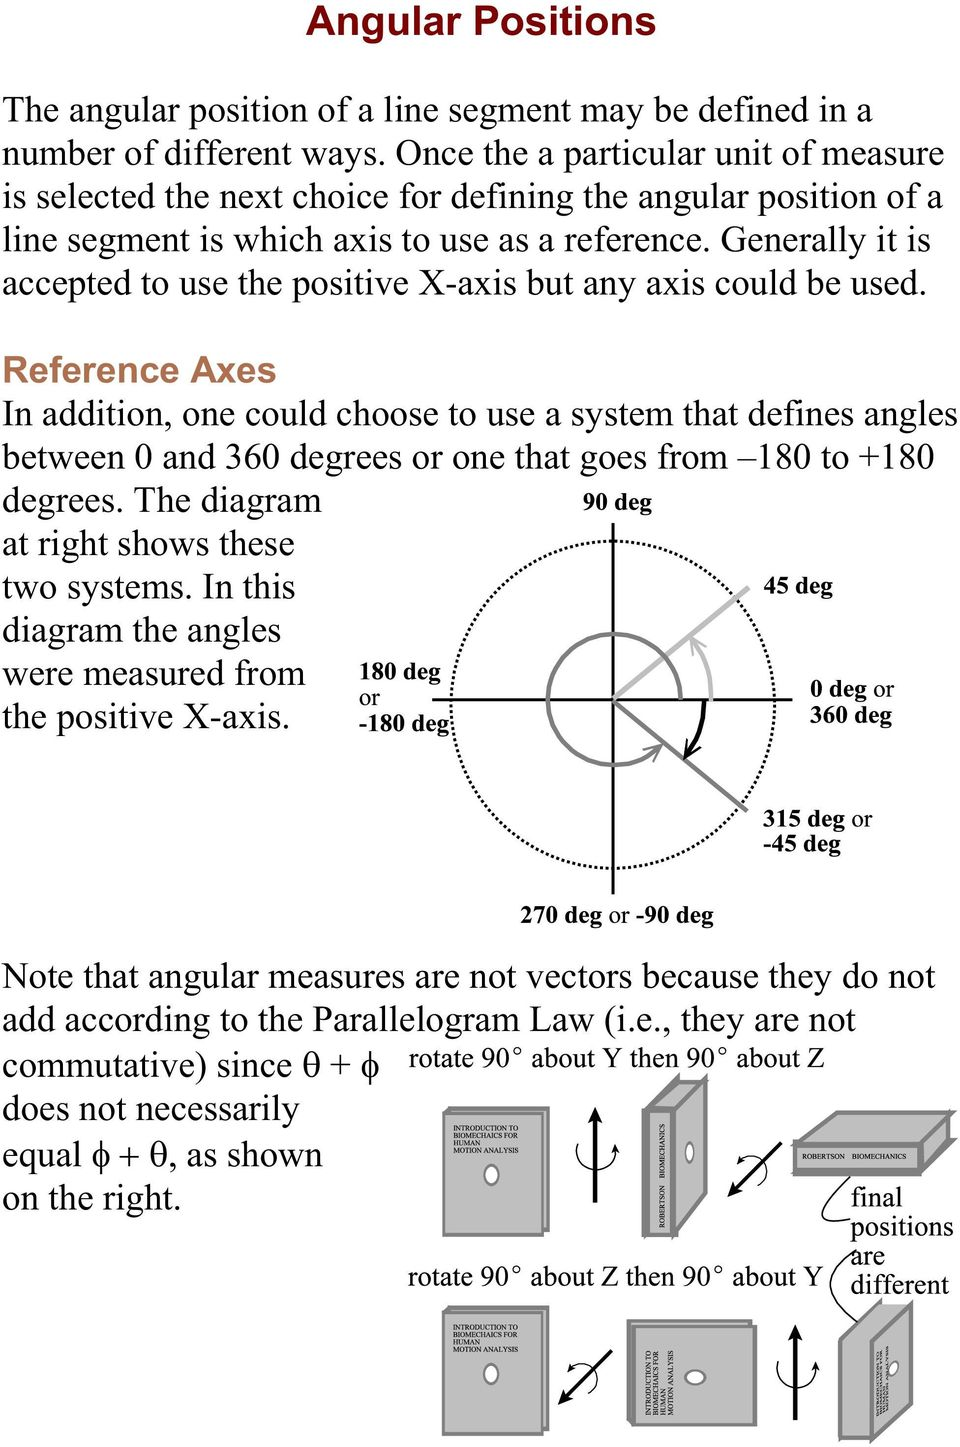 Generally it is accepted to use the positive X-axis but any axis could be used.